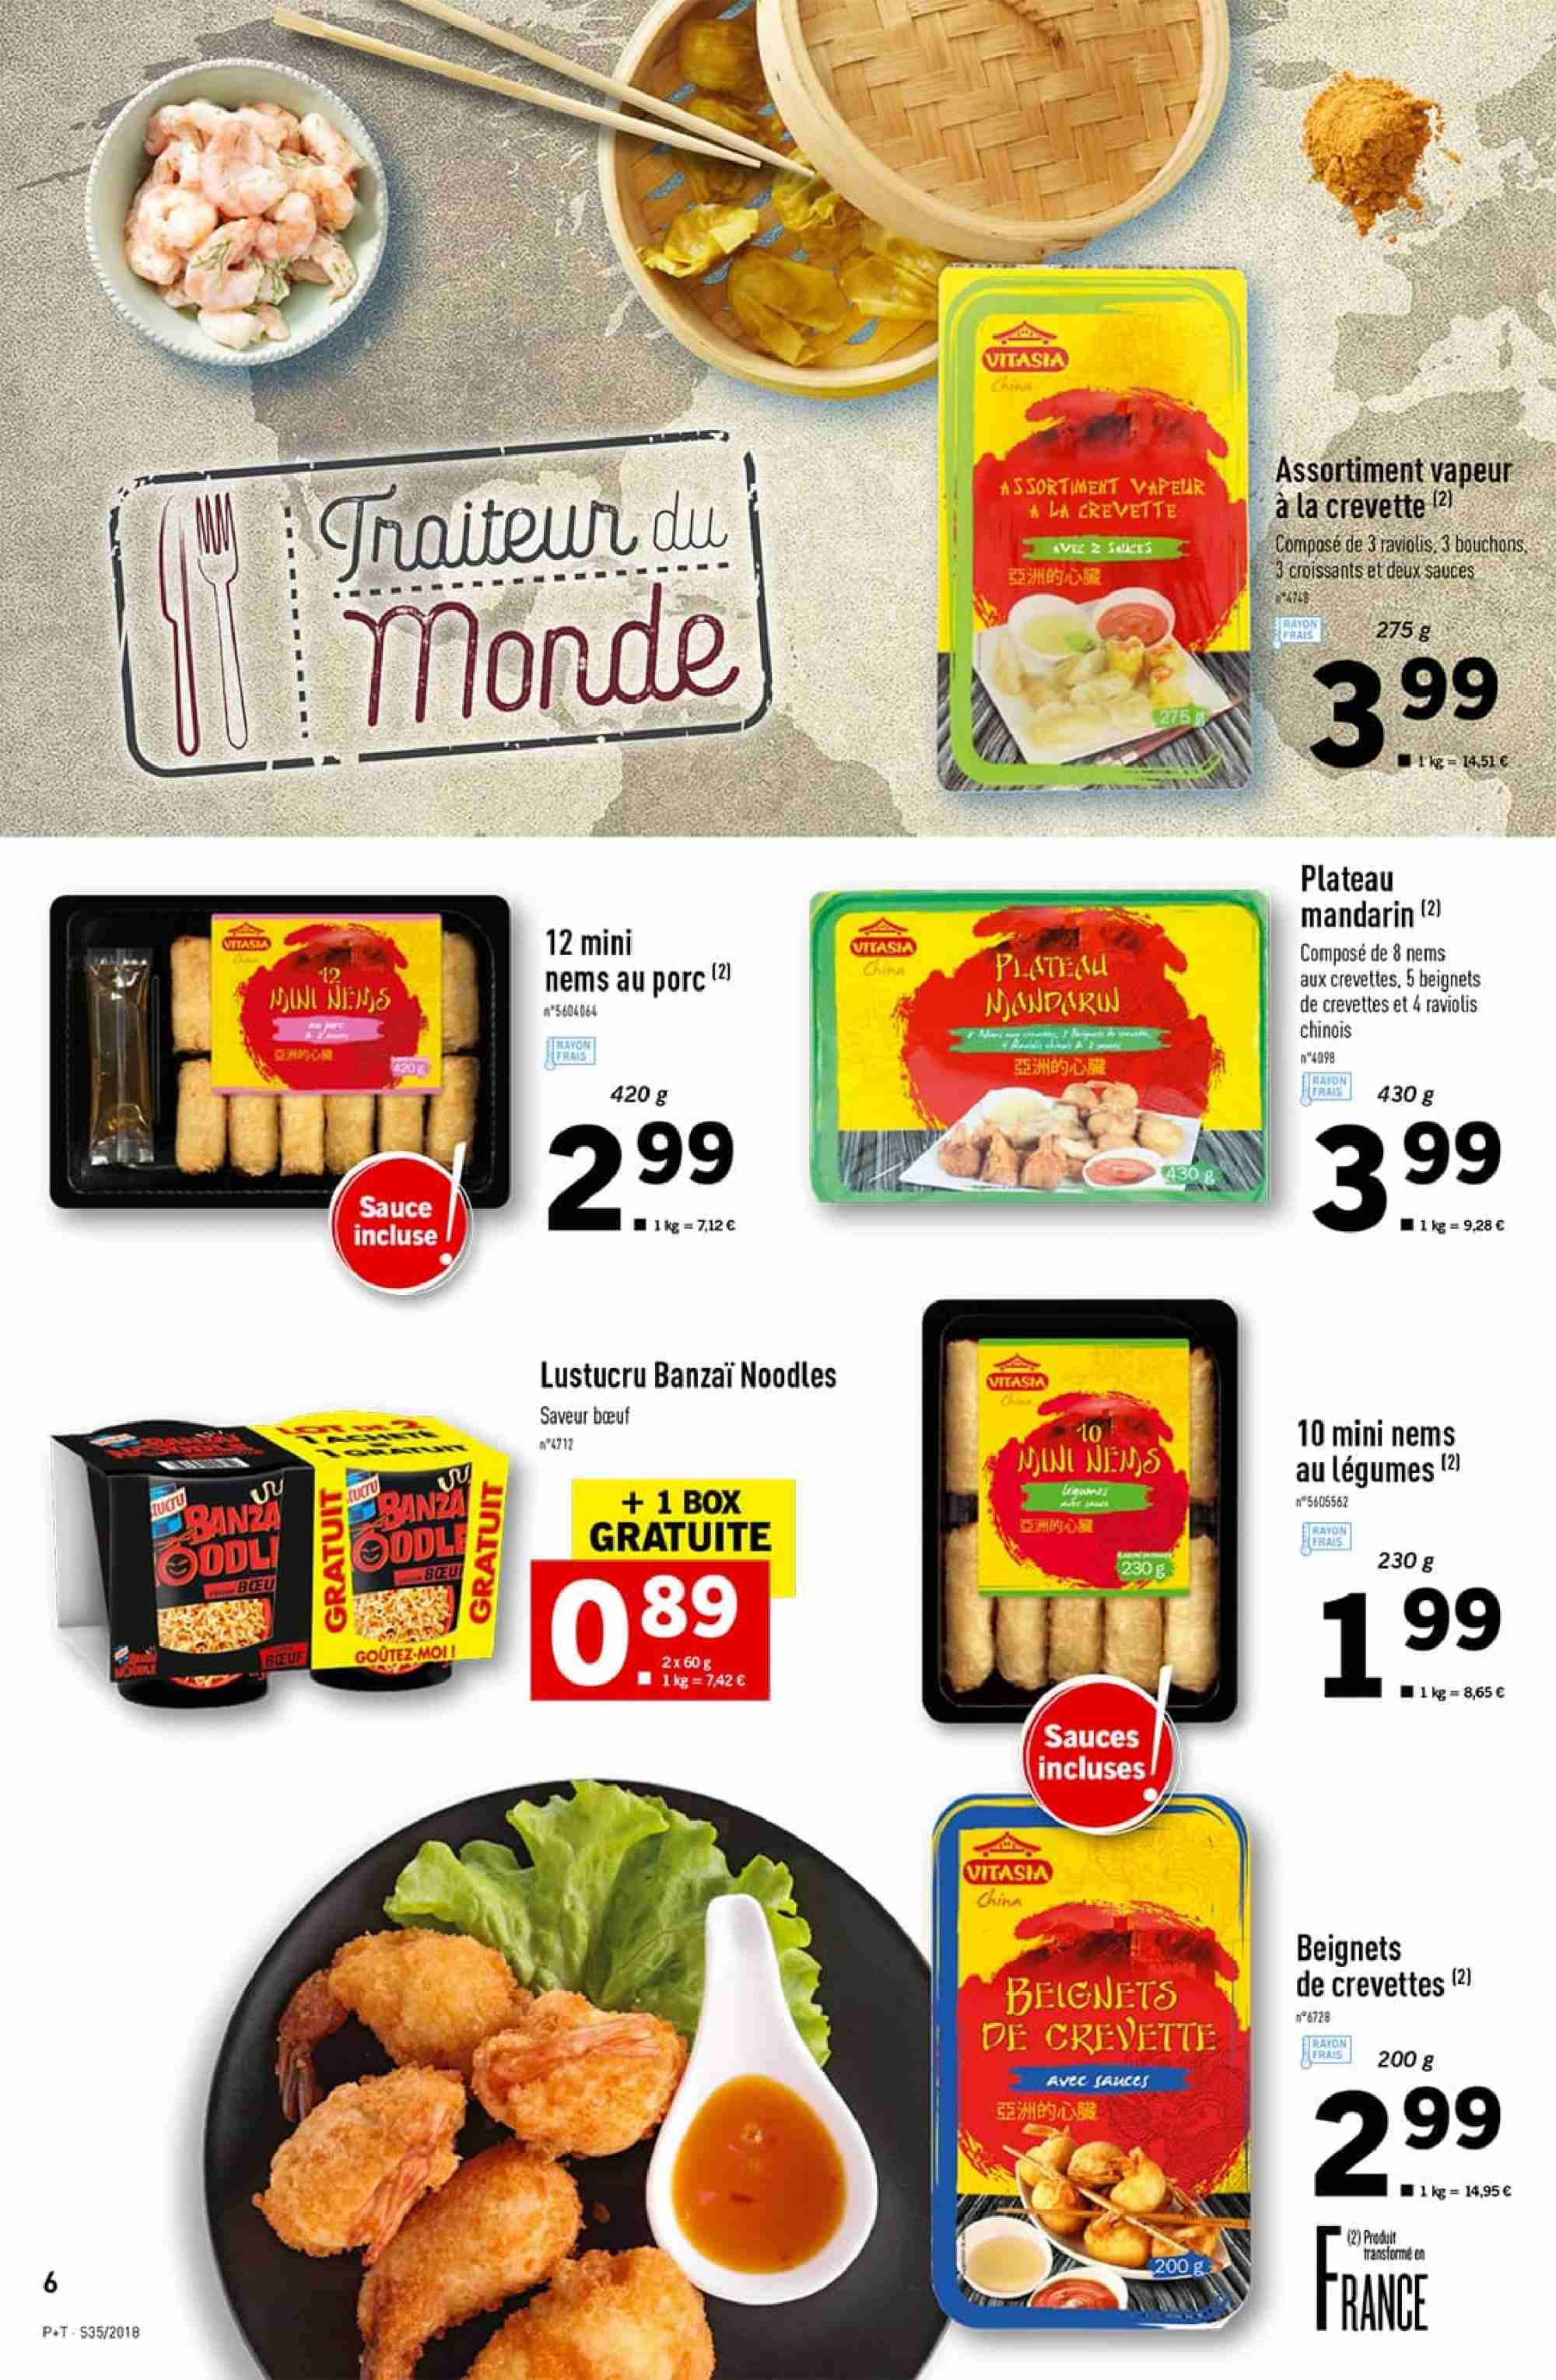 Catalogue Lidl - 29.08.2018 - 04.09.2018. Page 6.